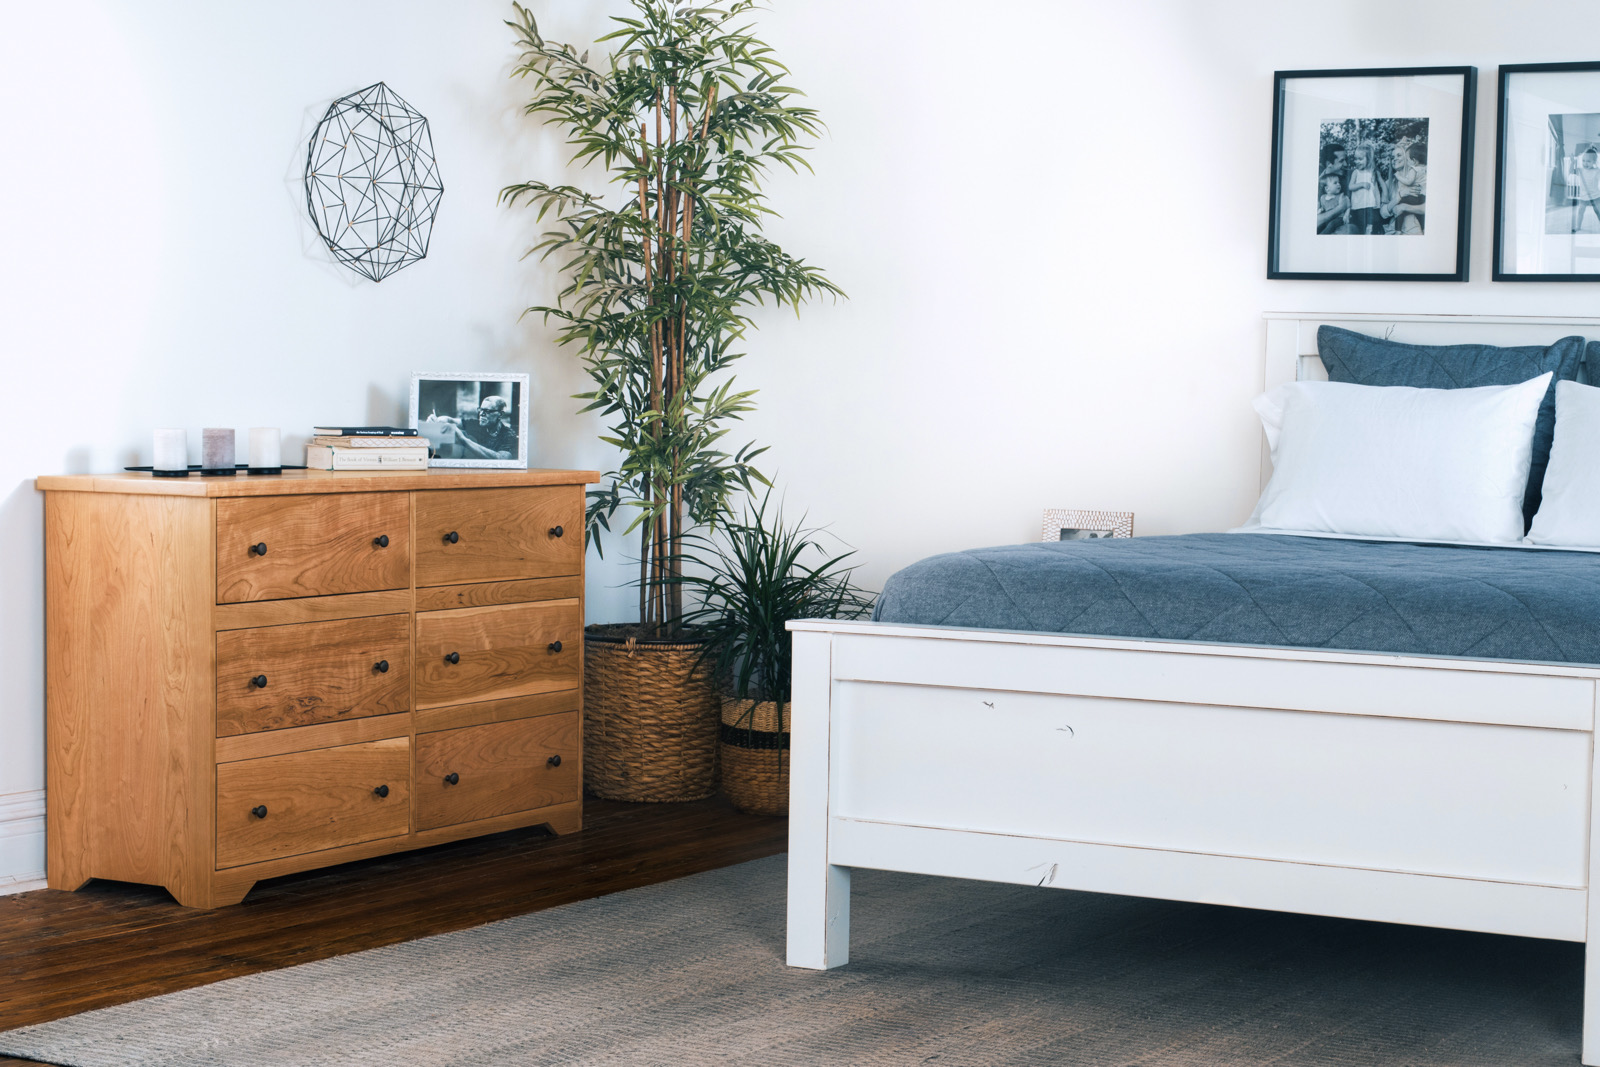 Two-toned beds and dressers